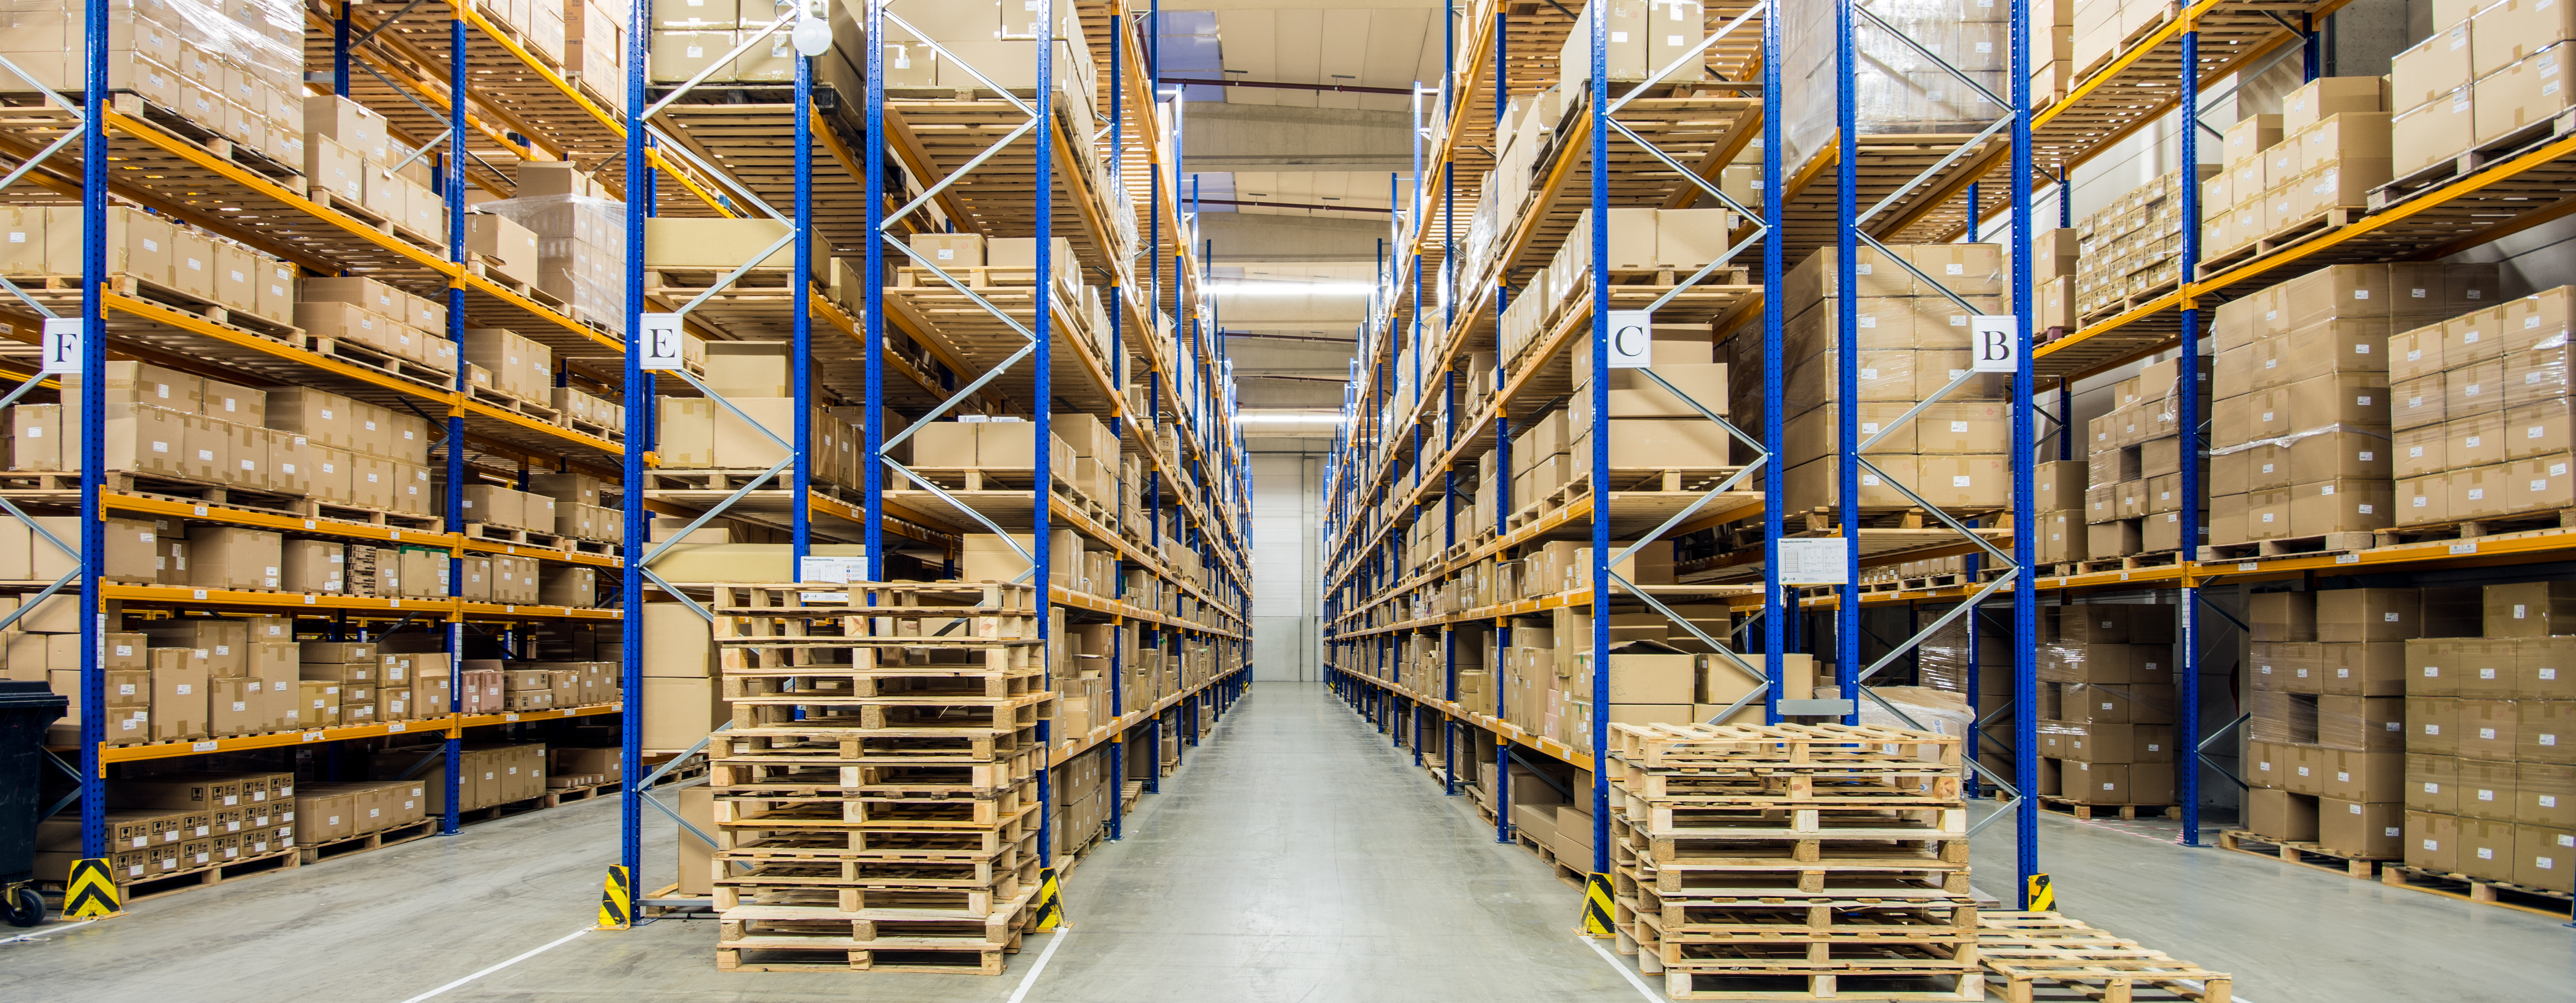 Commercial Pallet Racking System: All that You Should Know